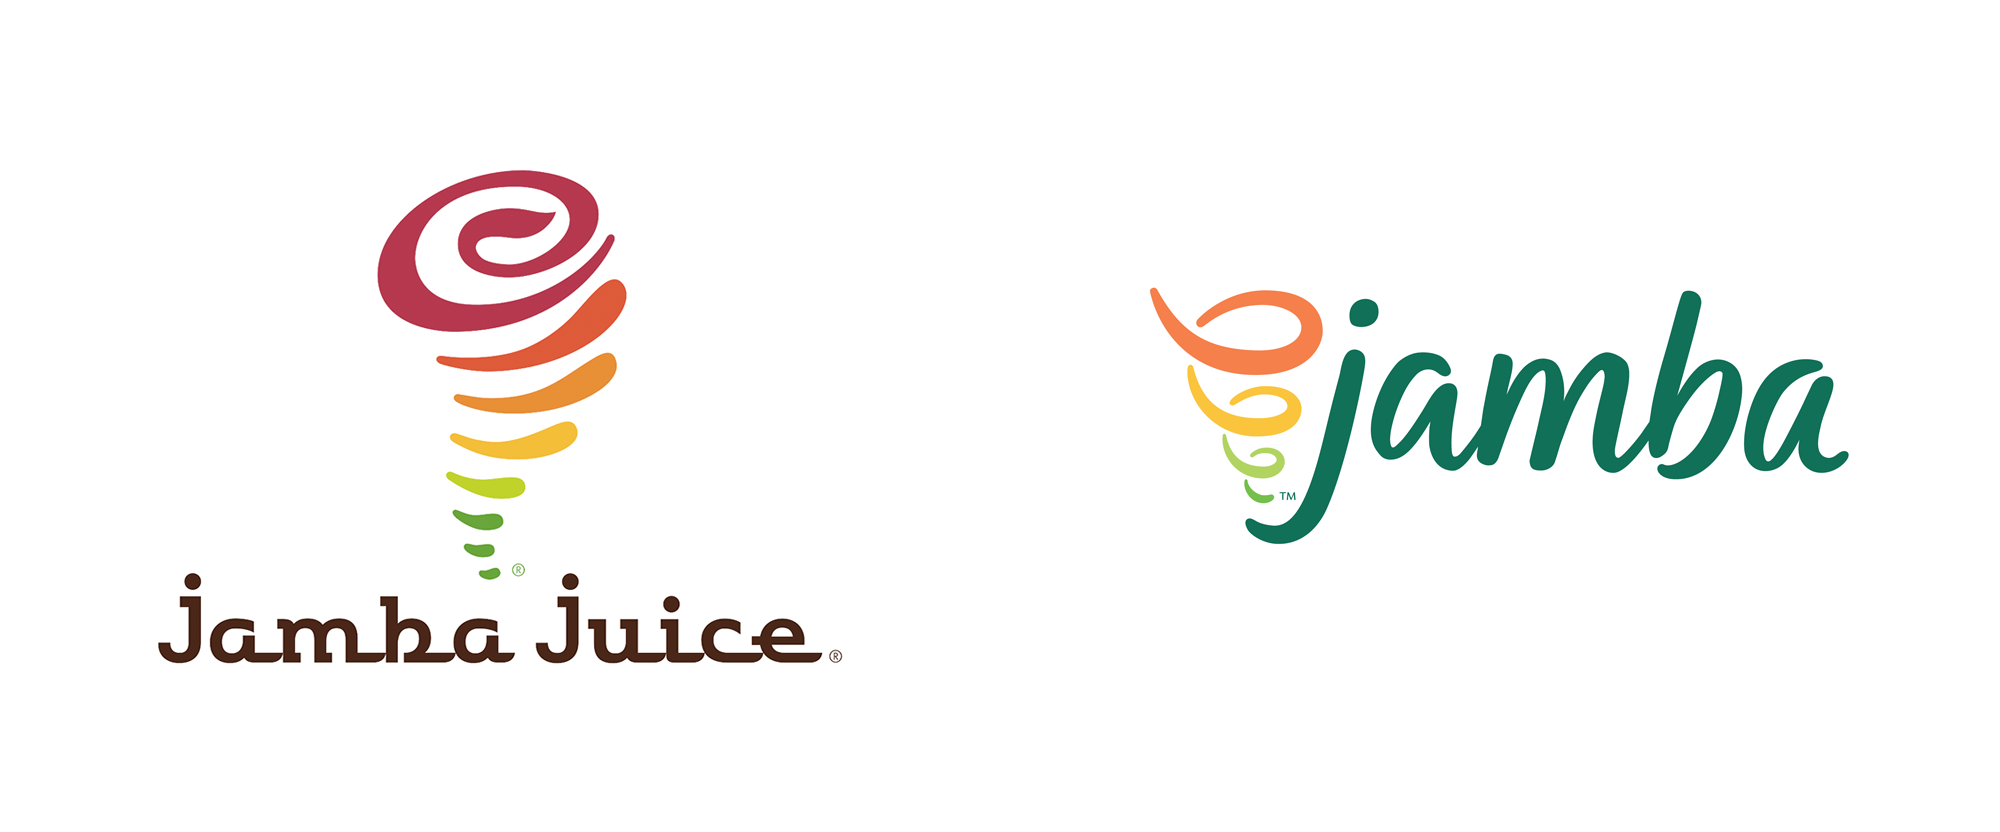 brand new new name and logo for jamba by sterling rice group brand new new name and logo for jamba